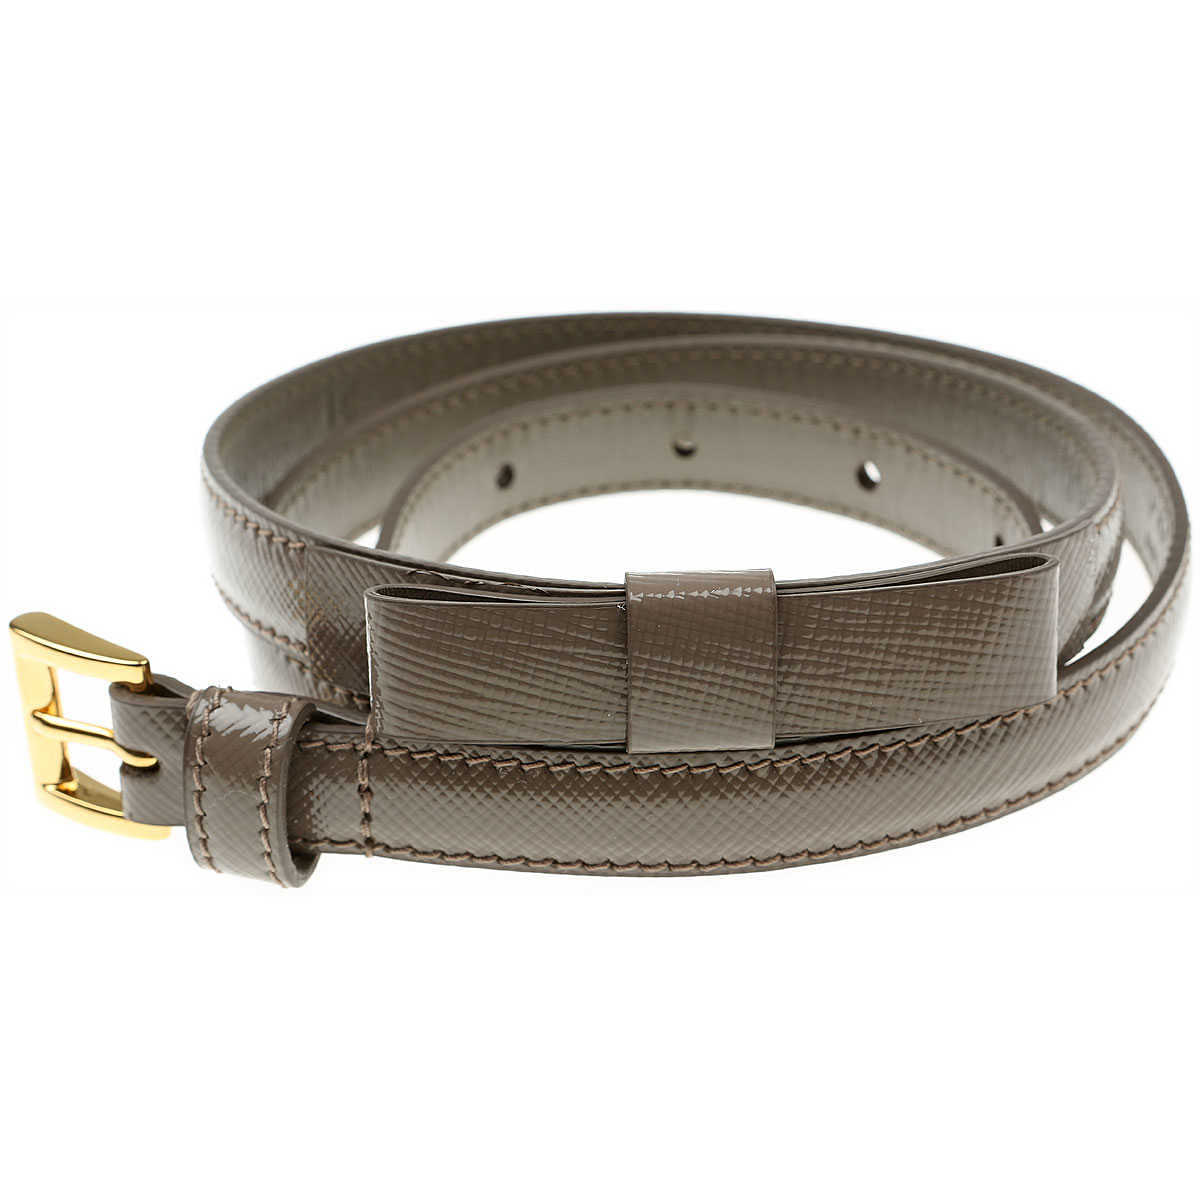 Prada Belt for Women in Outlet Clay Canada - GOOFASH - Womens BELTS